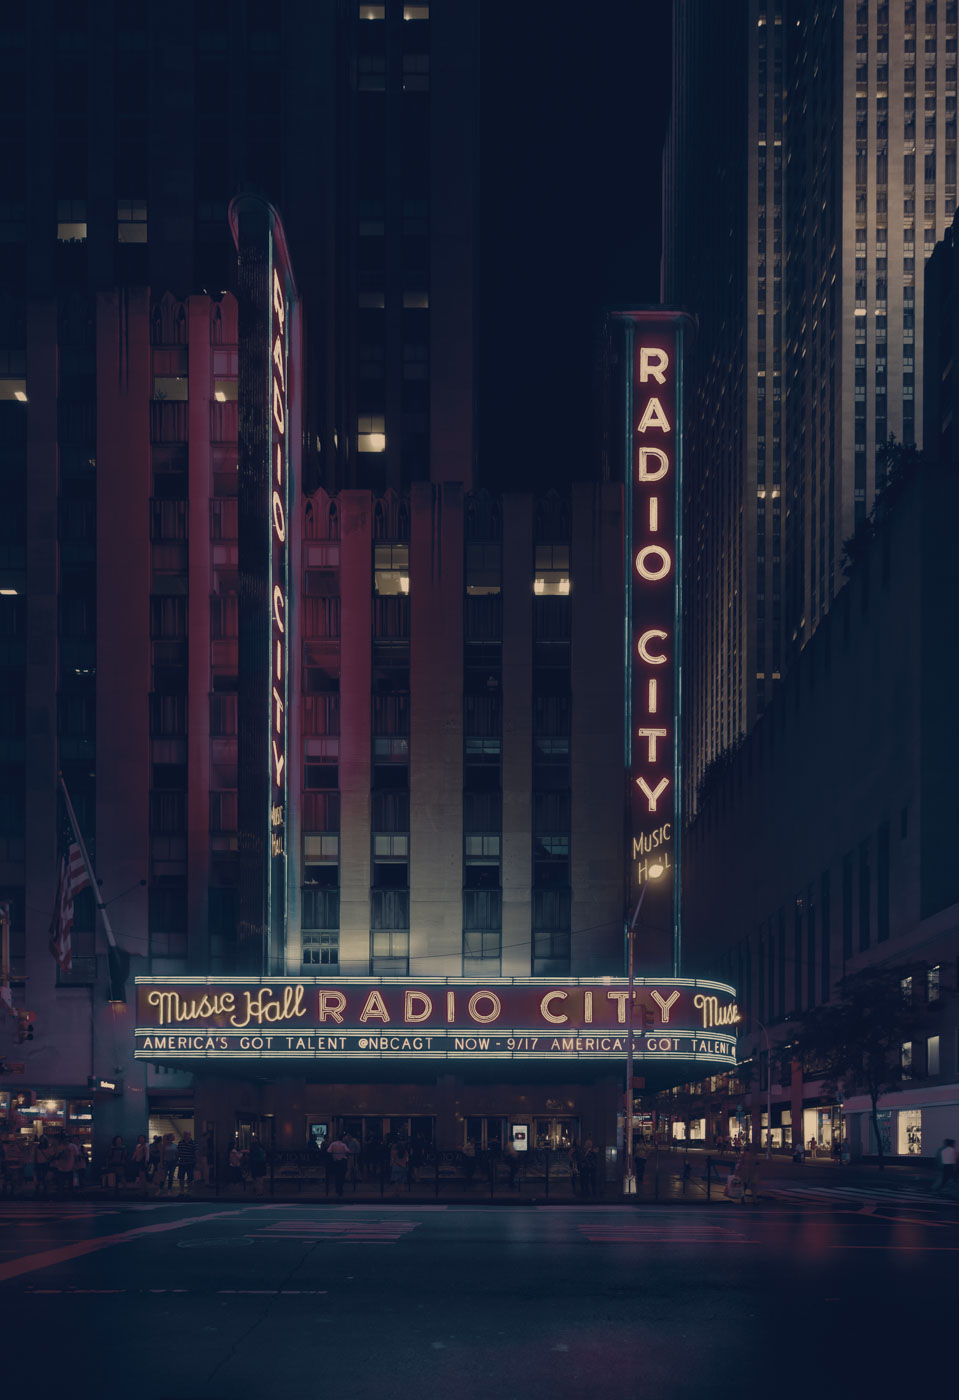 NYC2017-still-Radio City Hall nuit pano.jpg